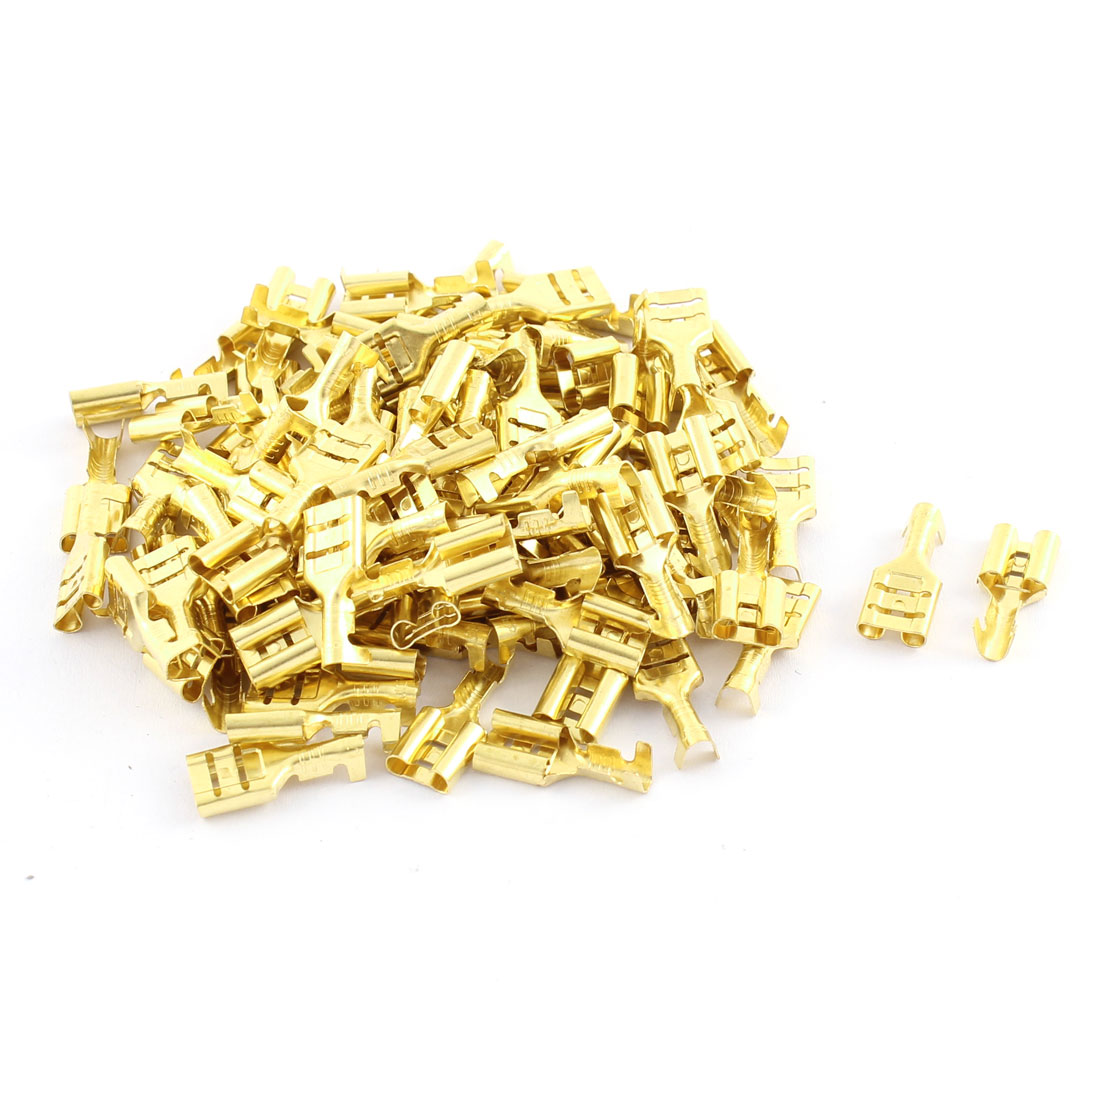 100pcs Gold Tone Metal Female Spade Terminals for 6.3mm Multi Connector